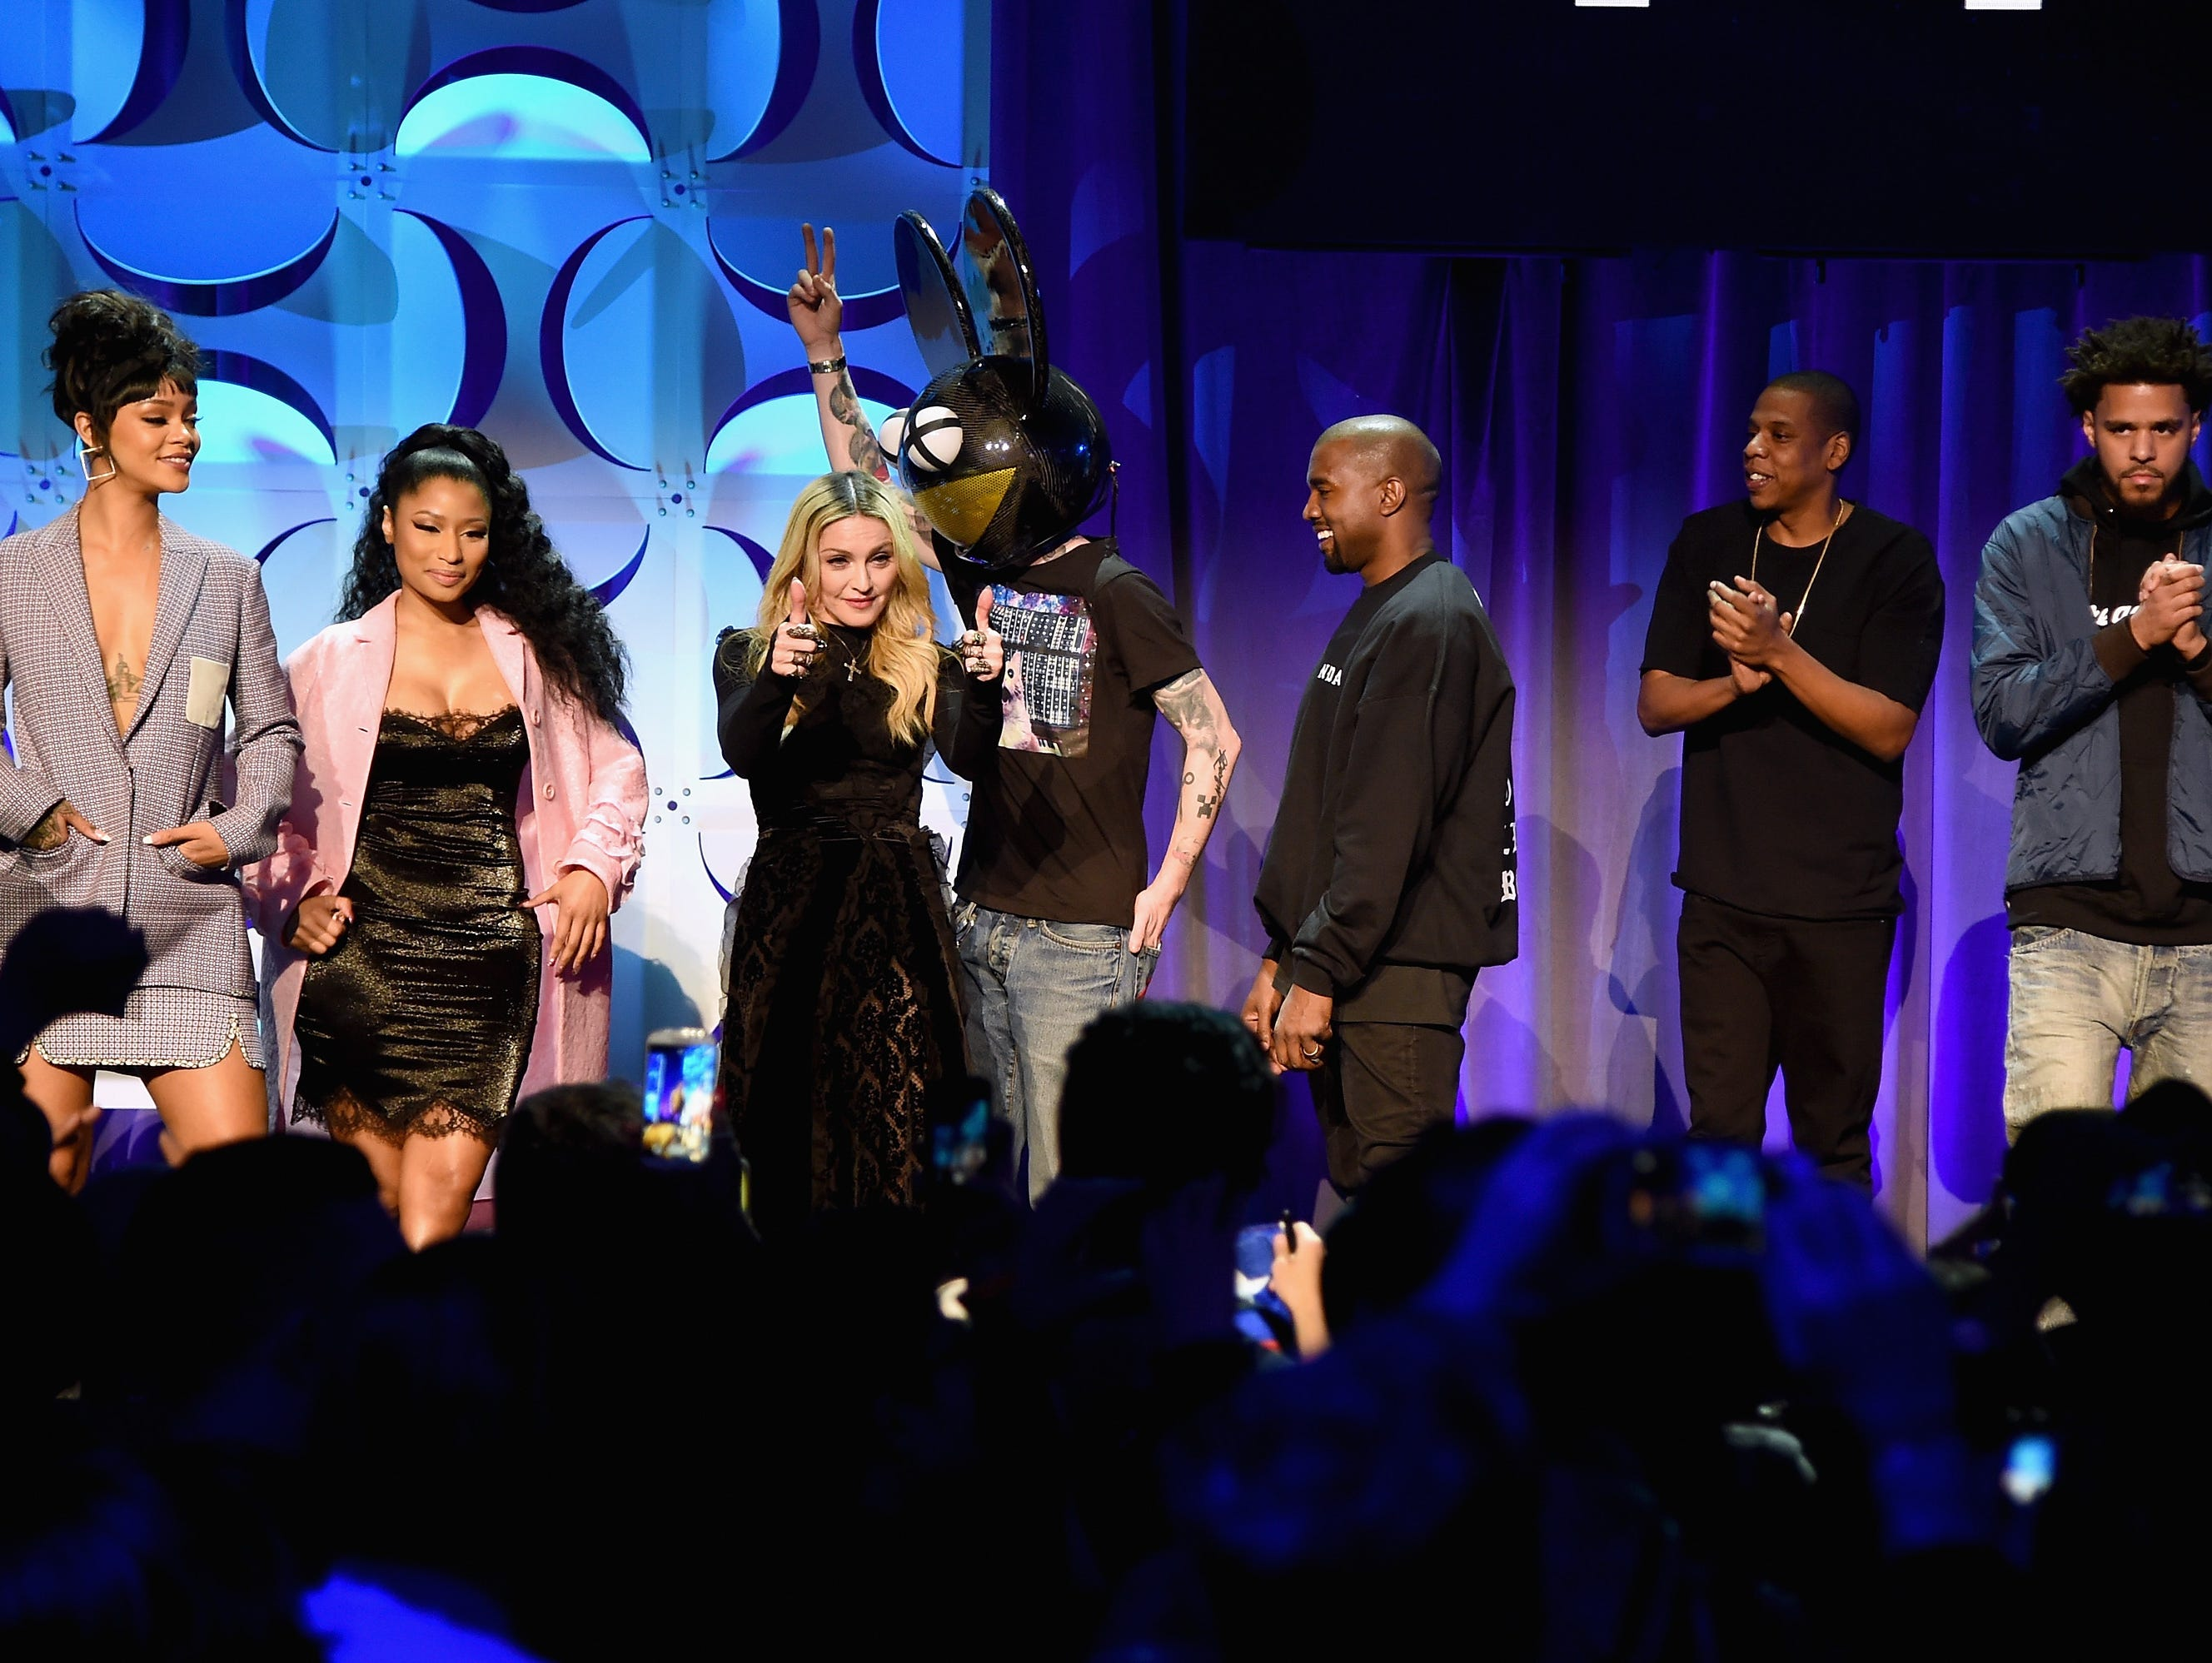 (L-R) Rihanna, Nicki Minaj, Madonna, Deadmau5, Kanye West, JAY Z, and J. Cole onstage at the Tidal launch event at Skylight at Moynihan Station on March 30, 2015 in New York City.